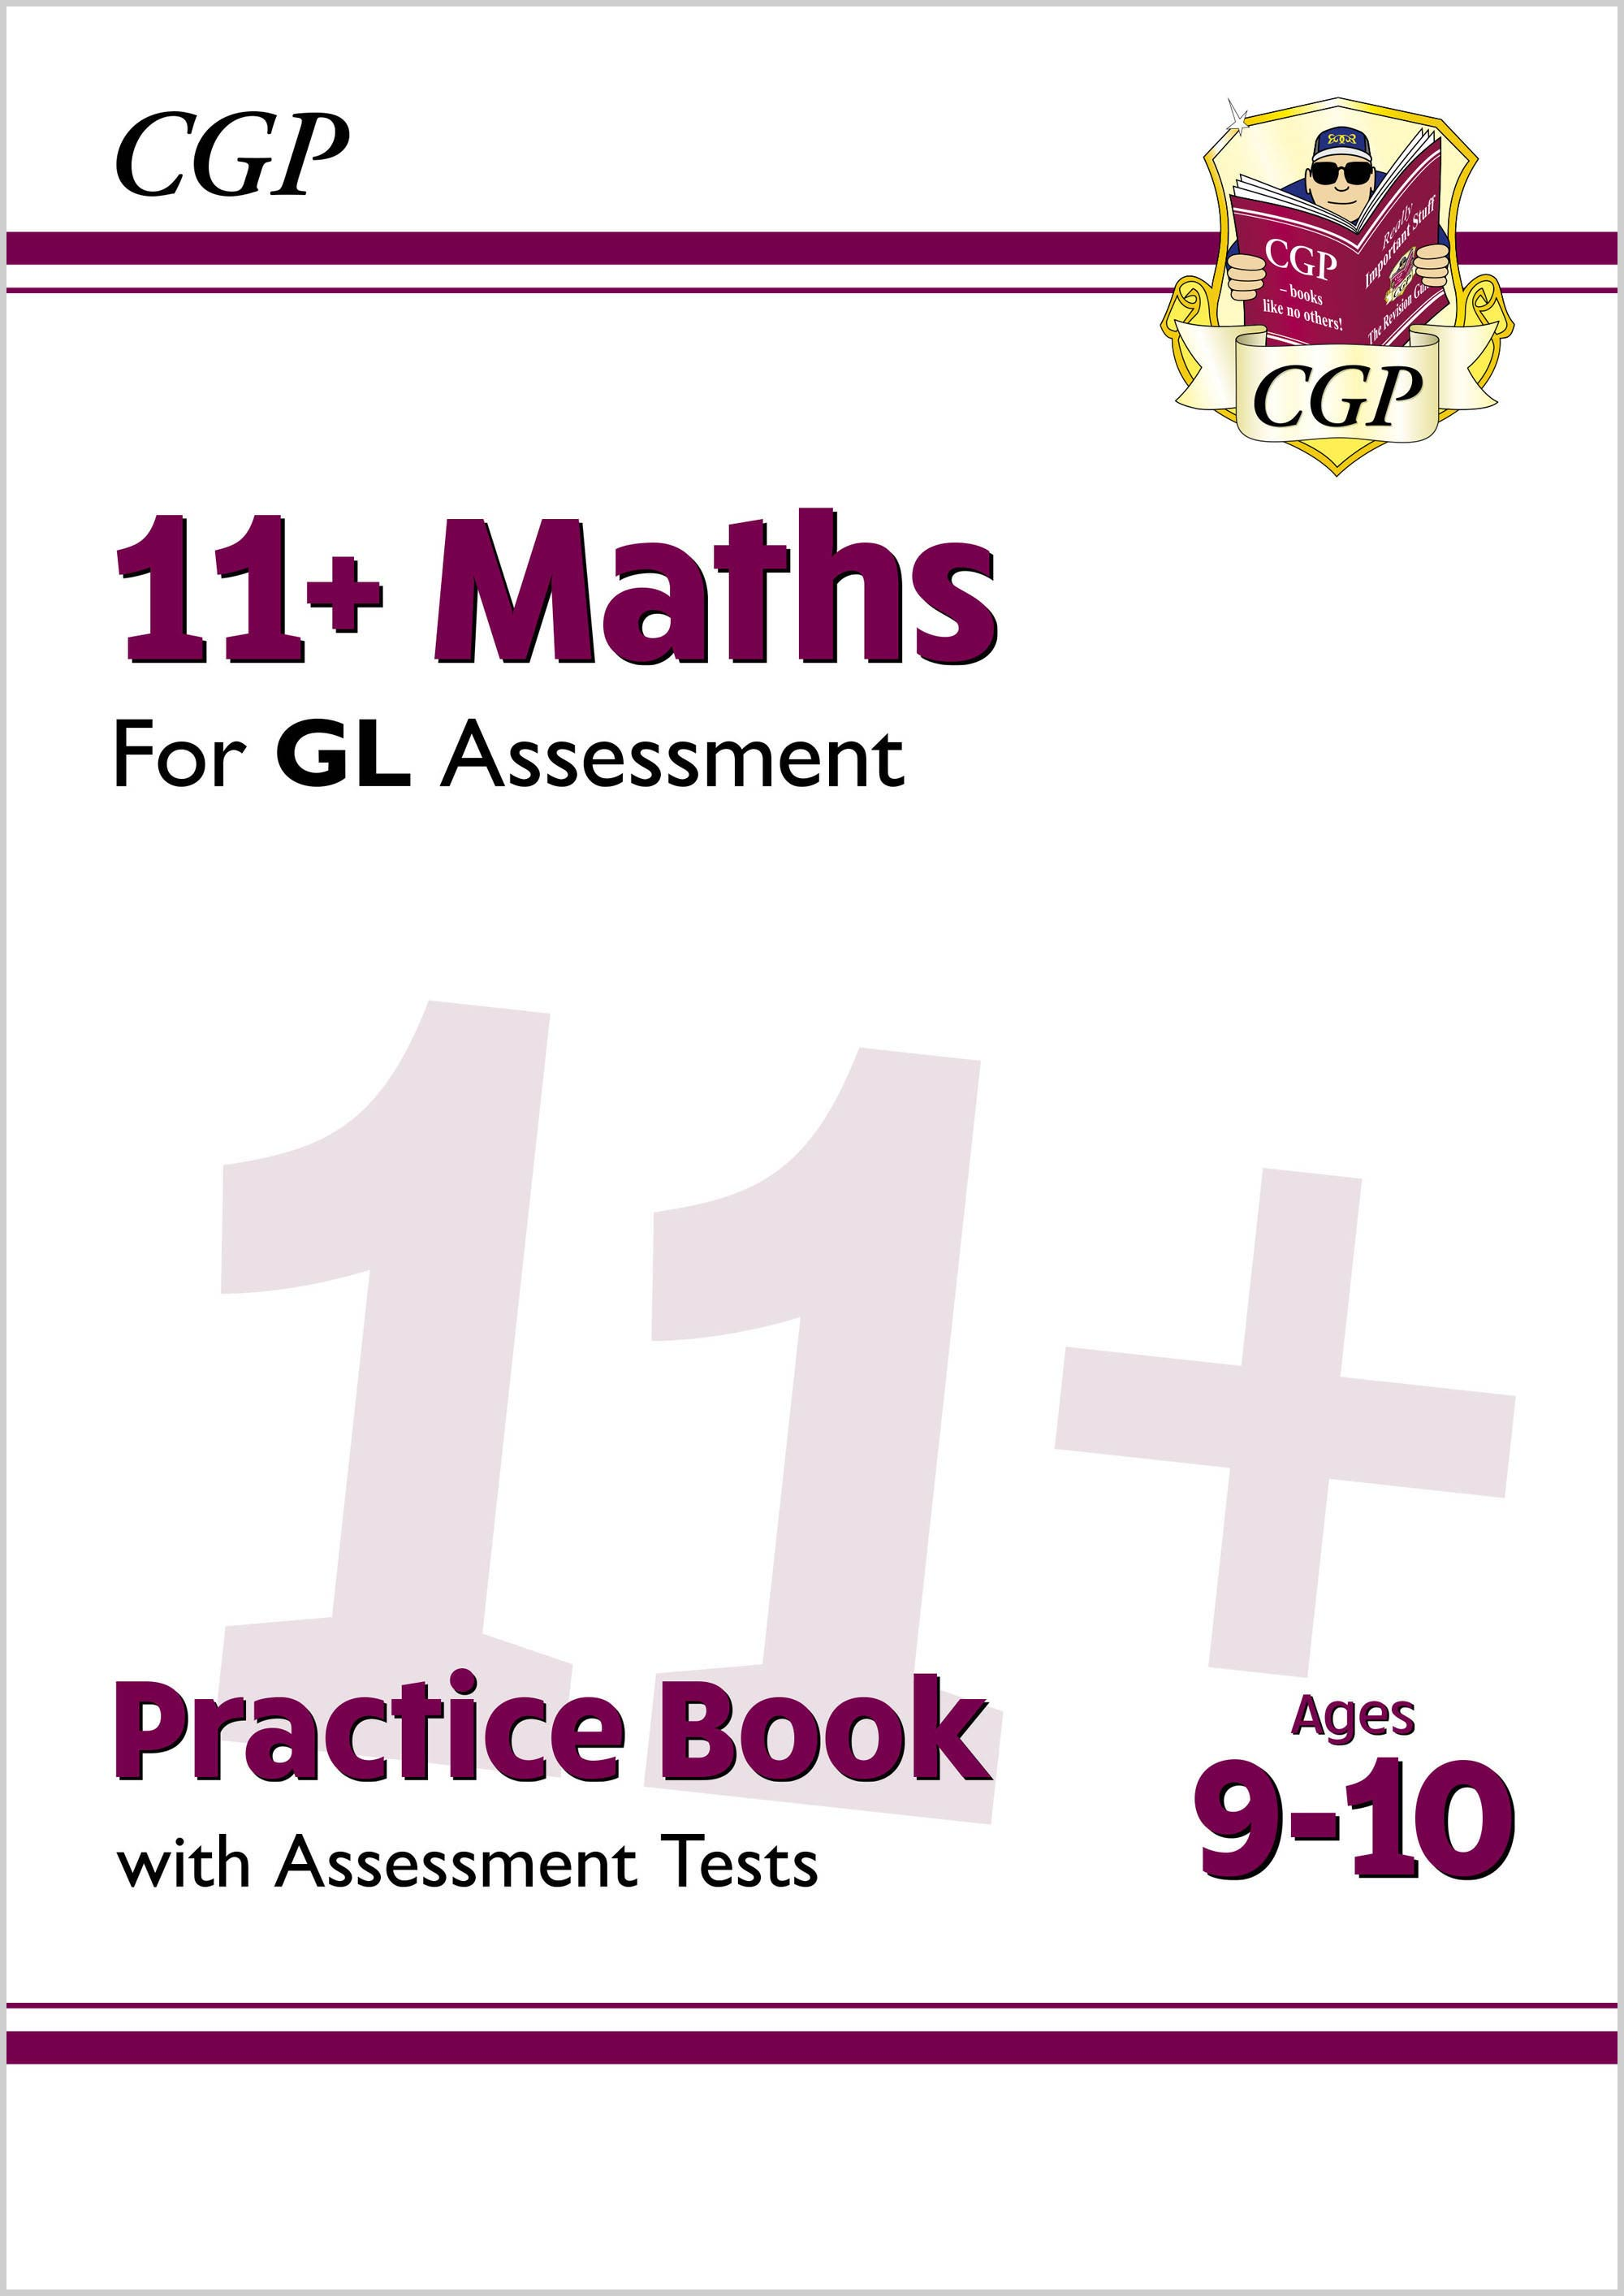 M5QE2DK - New 11+ GL Maths Practice Book & Assessment Tests - Ages 9-10